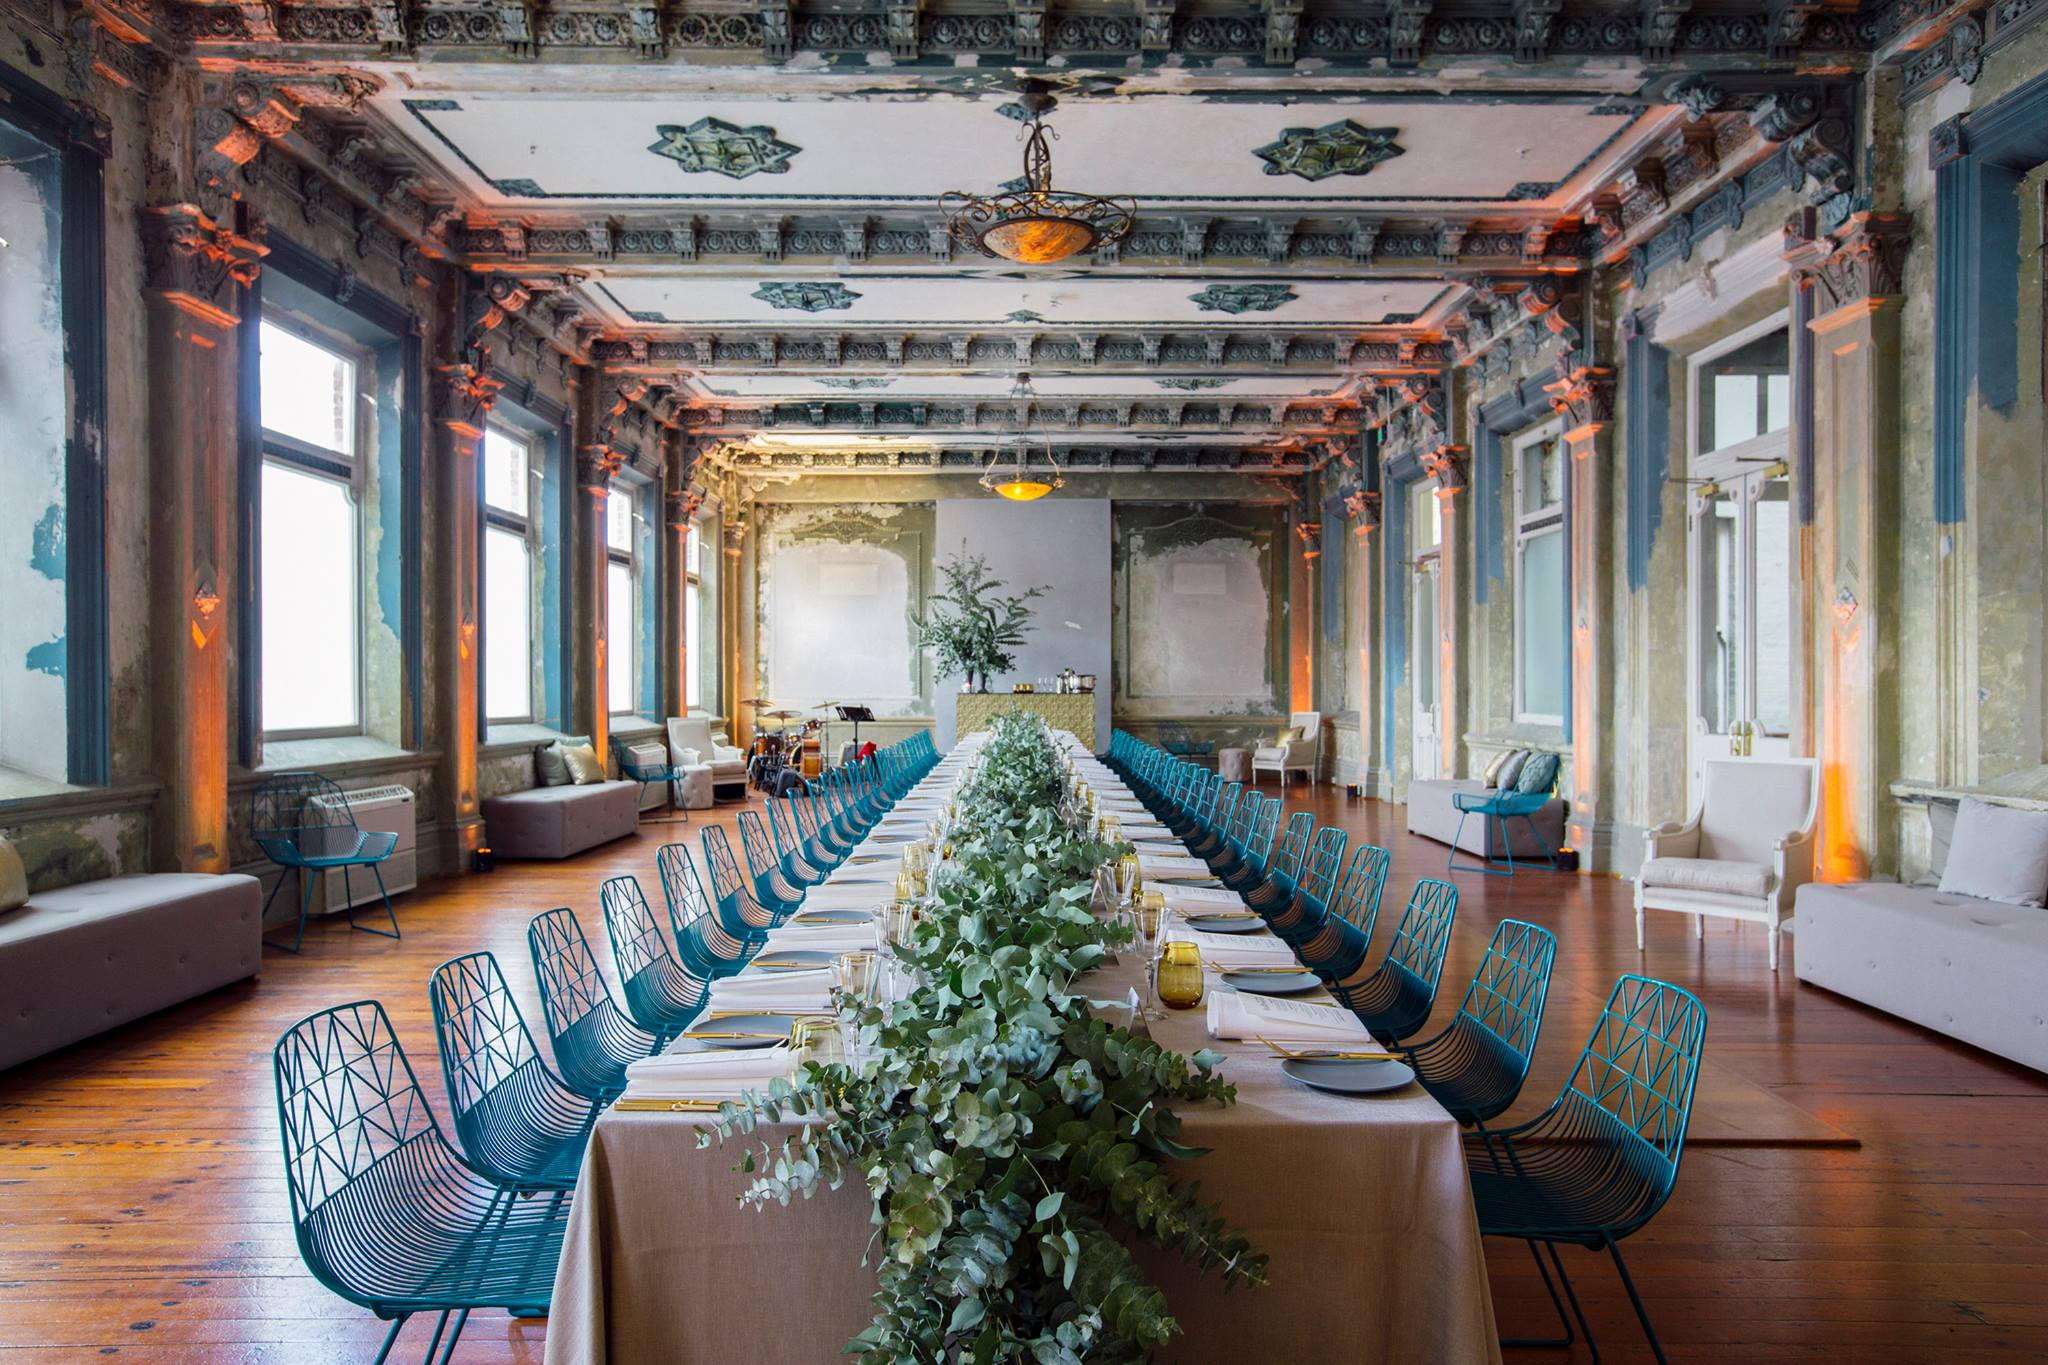 The George Ballroom is one of the Best Locations to get married in Australia, according to marriage celebrant Kate Mac.